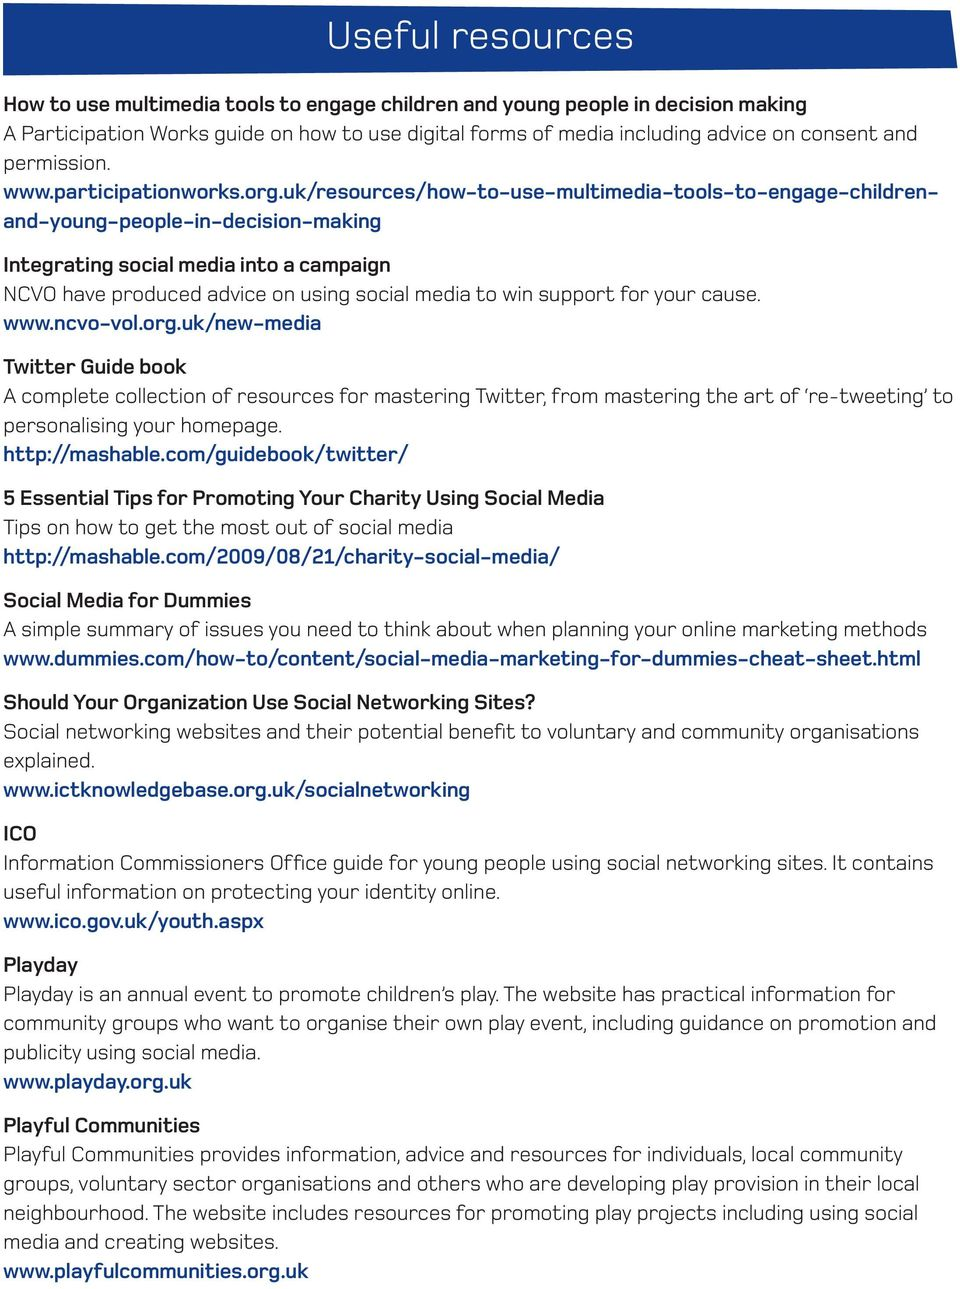 uk/resources/how-to-use-multimedia-tools-to-engage-childrenand-young-people-in-decision-making Integrating social media into a campaign NCVO have produced advice on using social media to win support